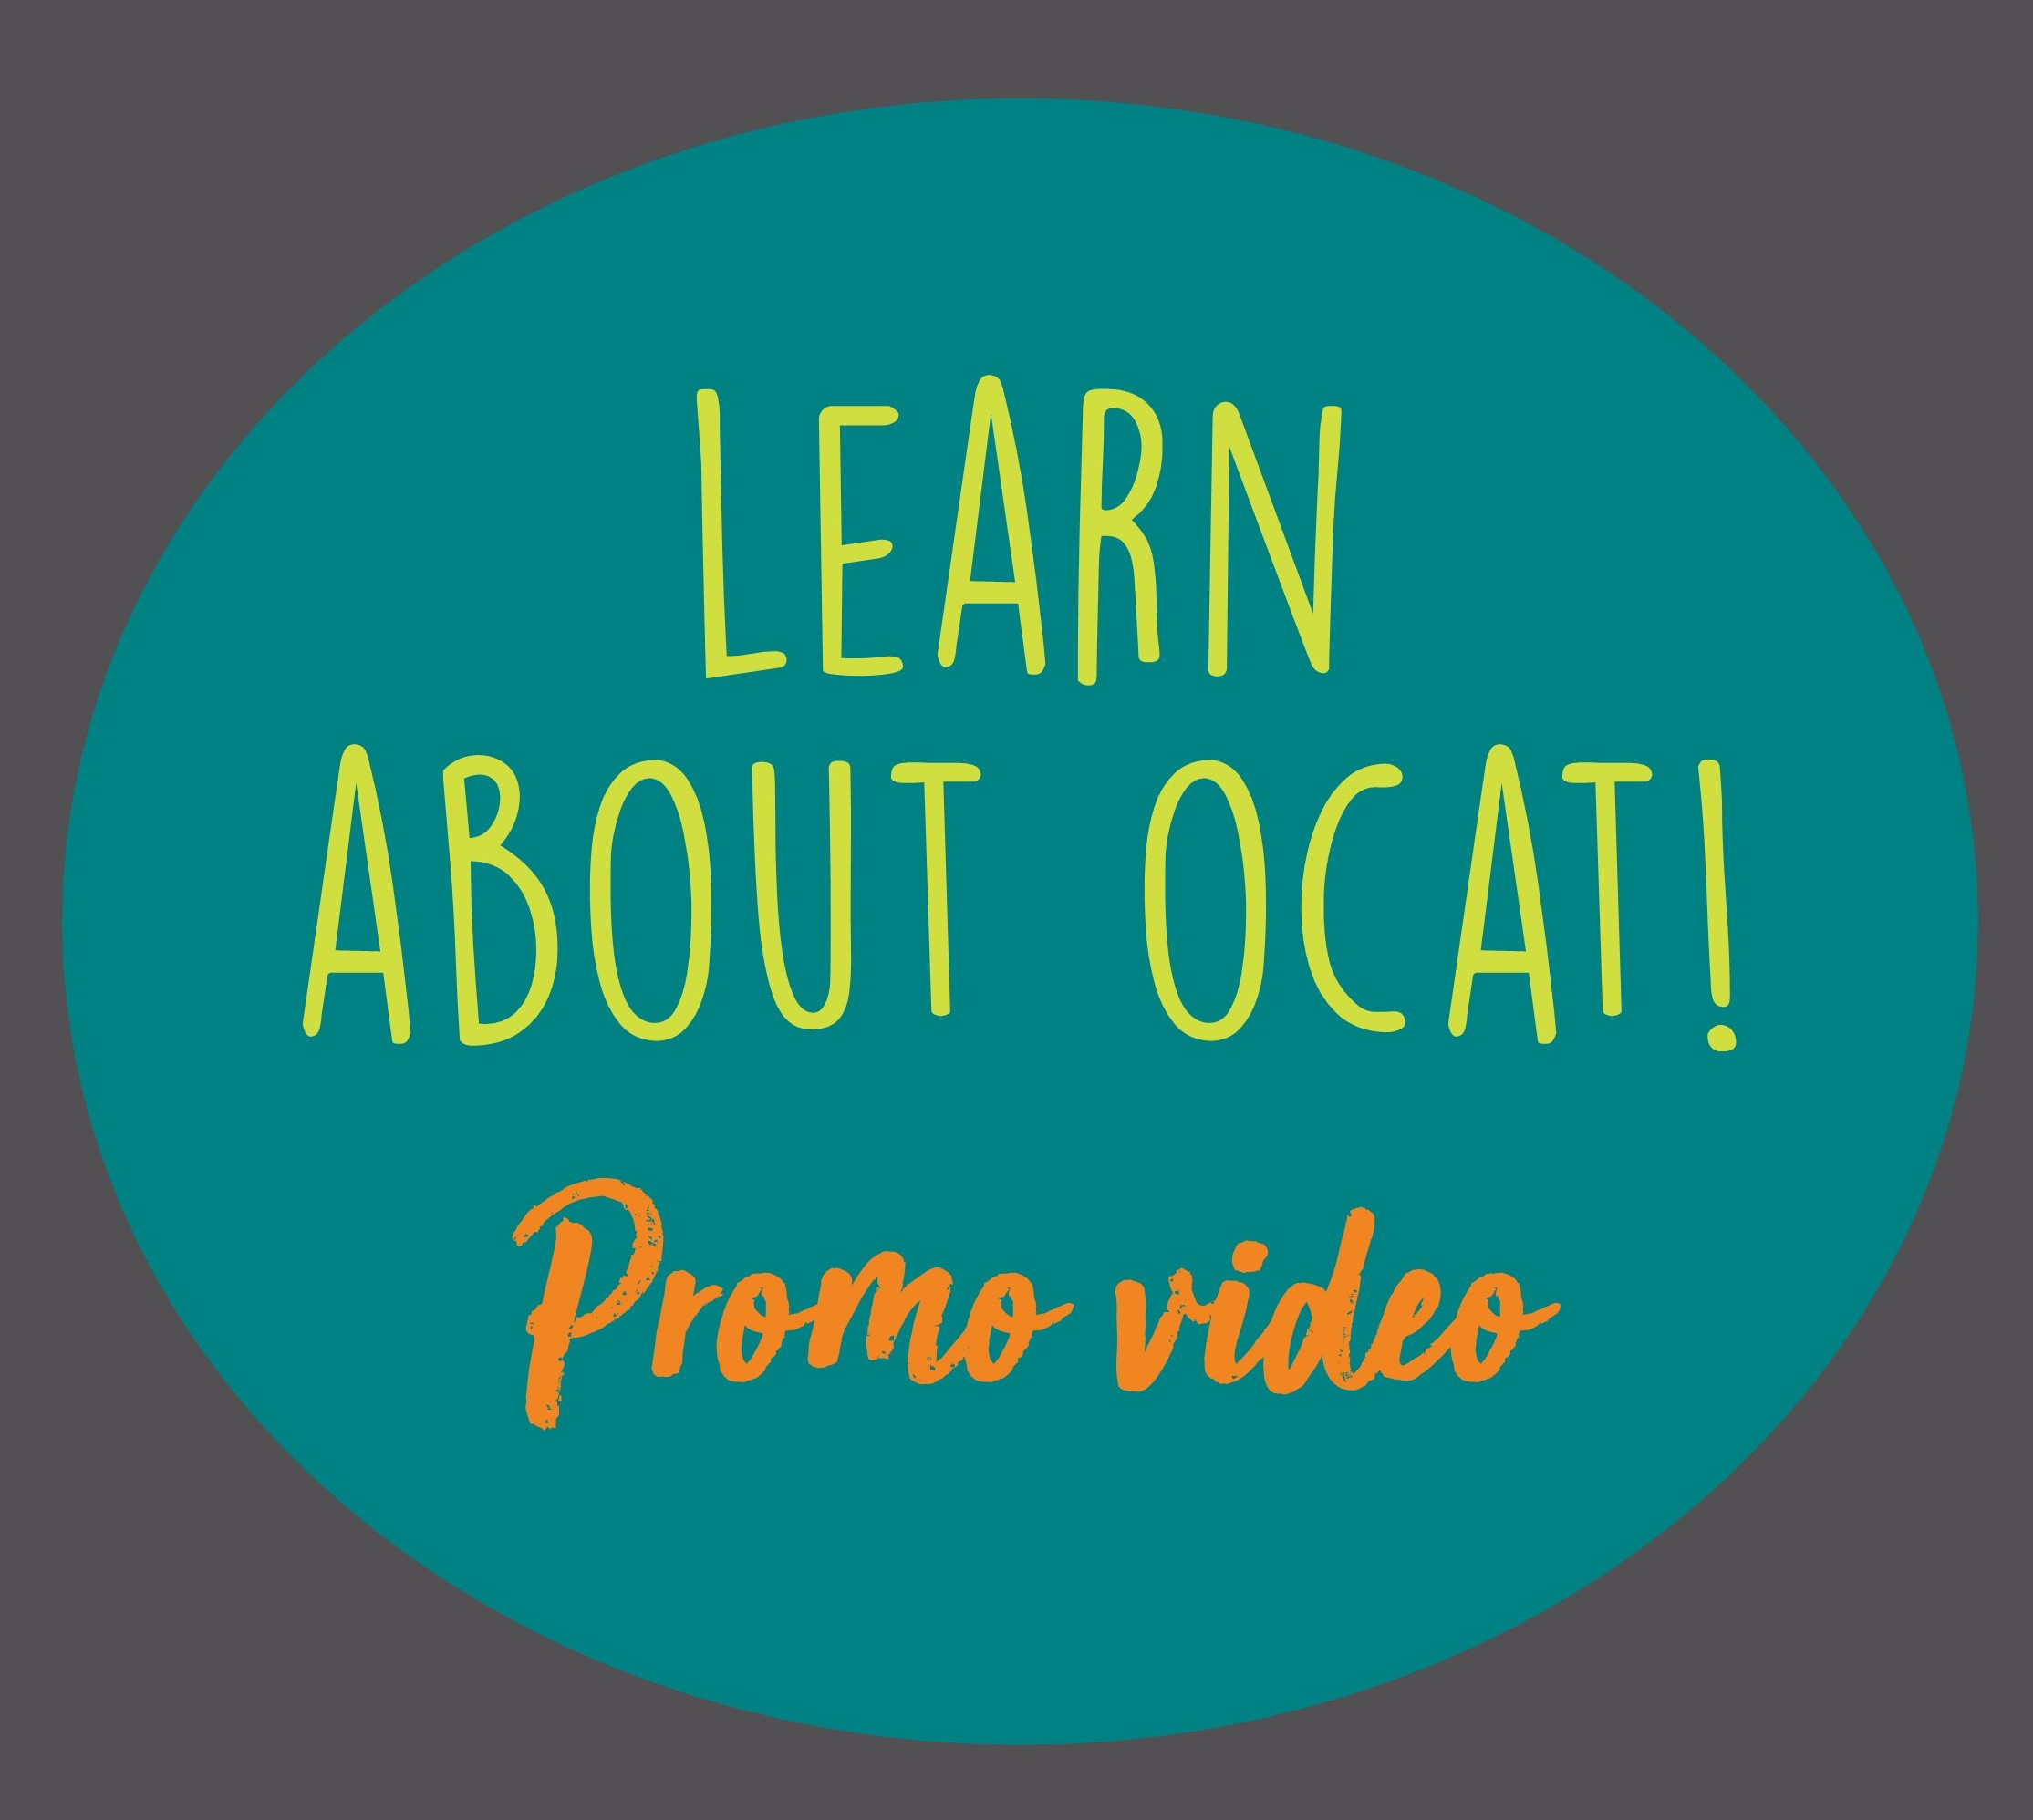 Learn about OCAT!